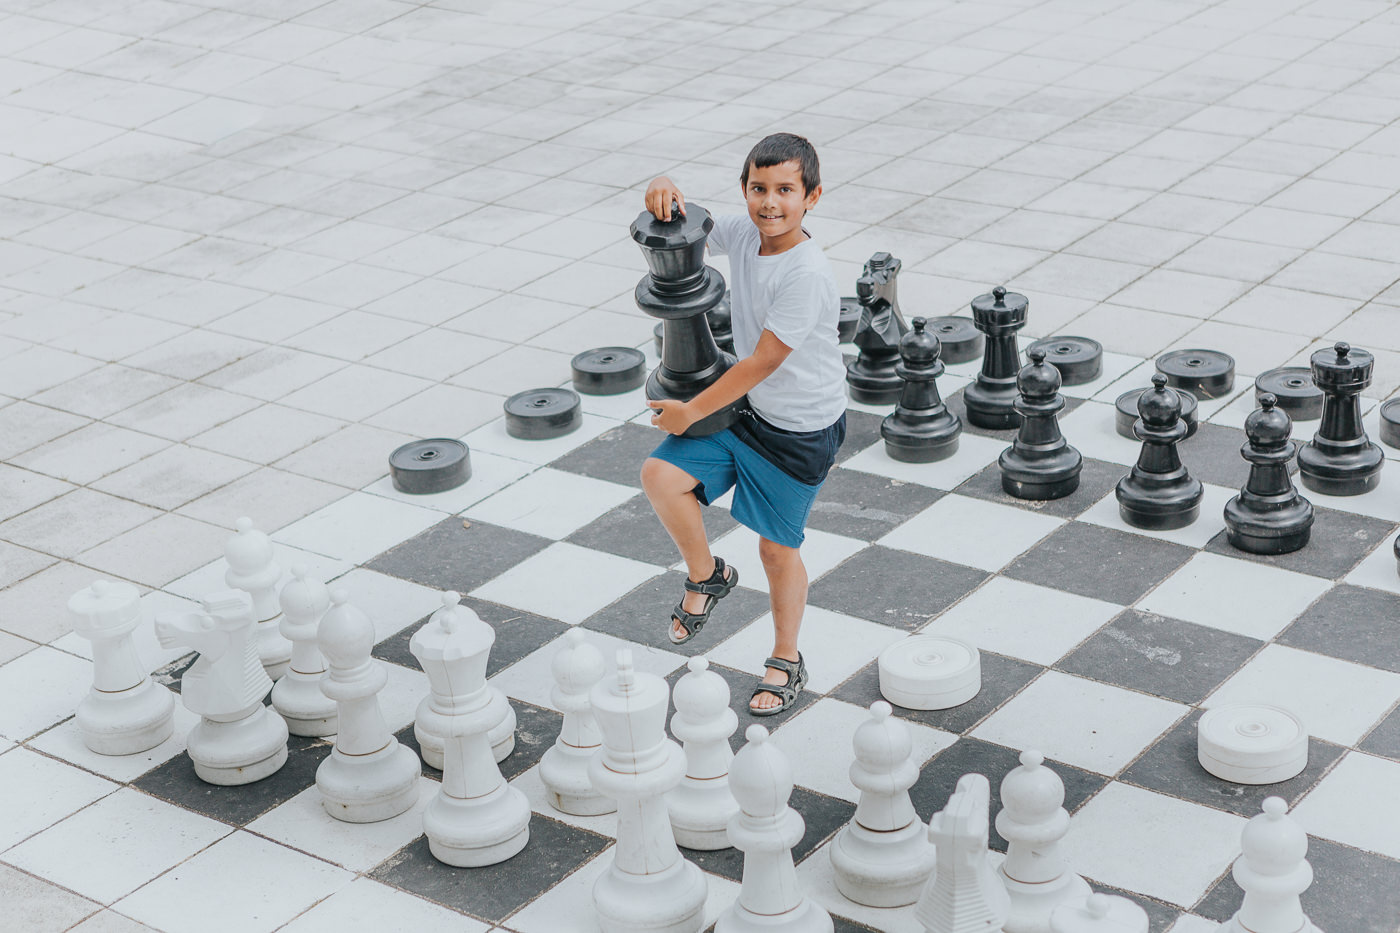 boy playing giant chess - best photography